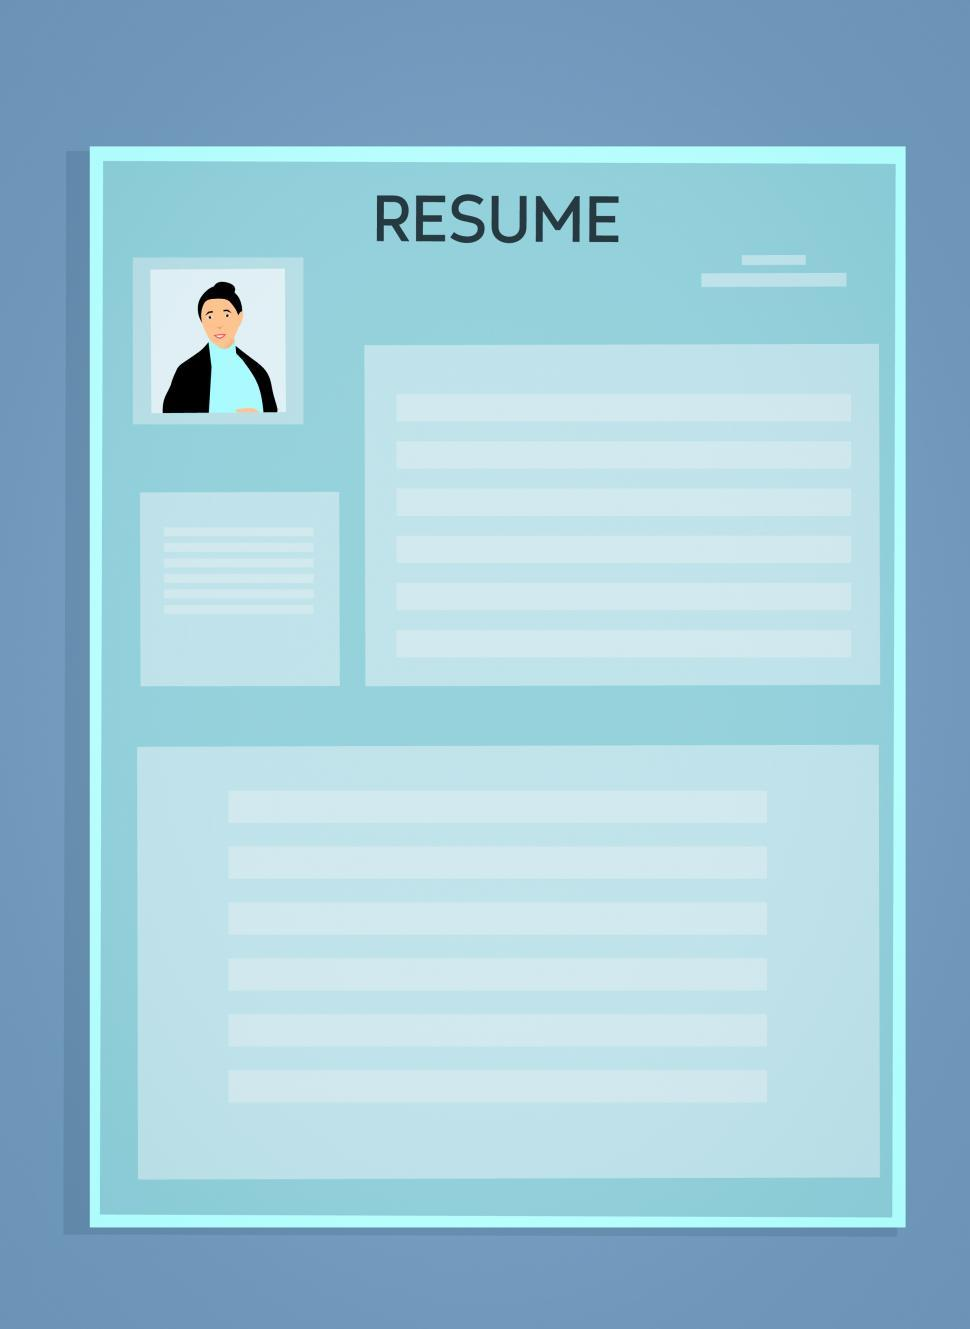 free stock photo of resume template latest images and illustrations photos hire heroes Resume Free Stock Photos Resume